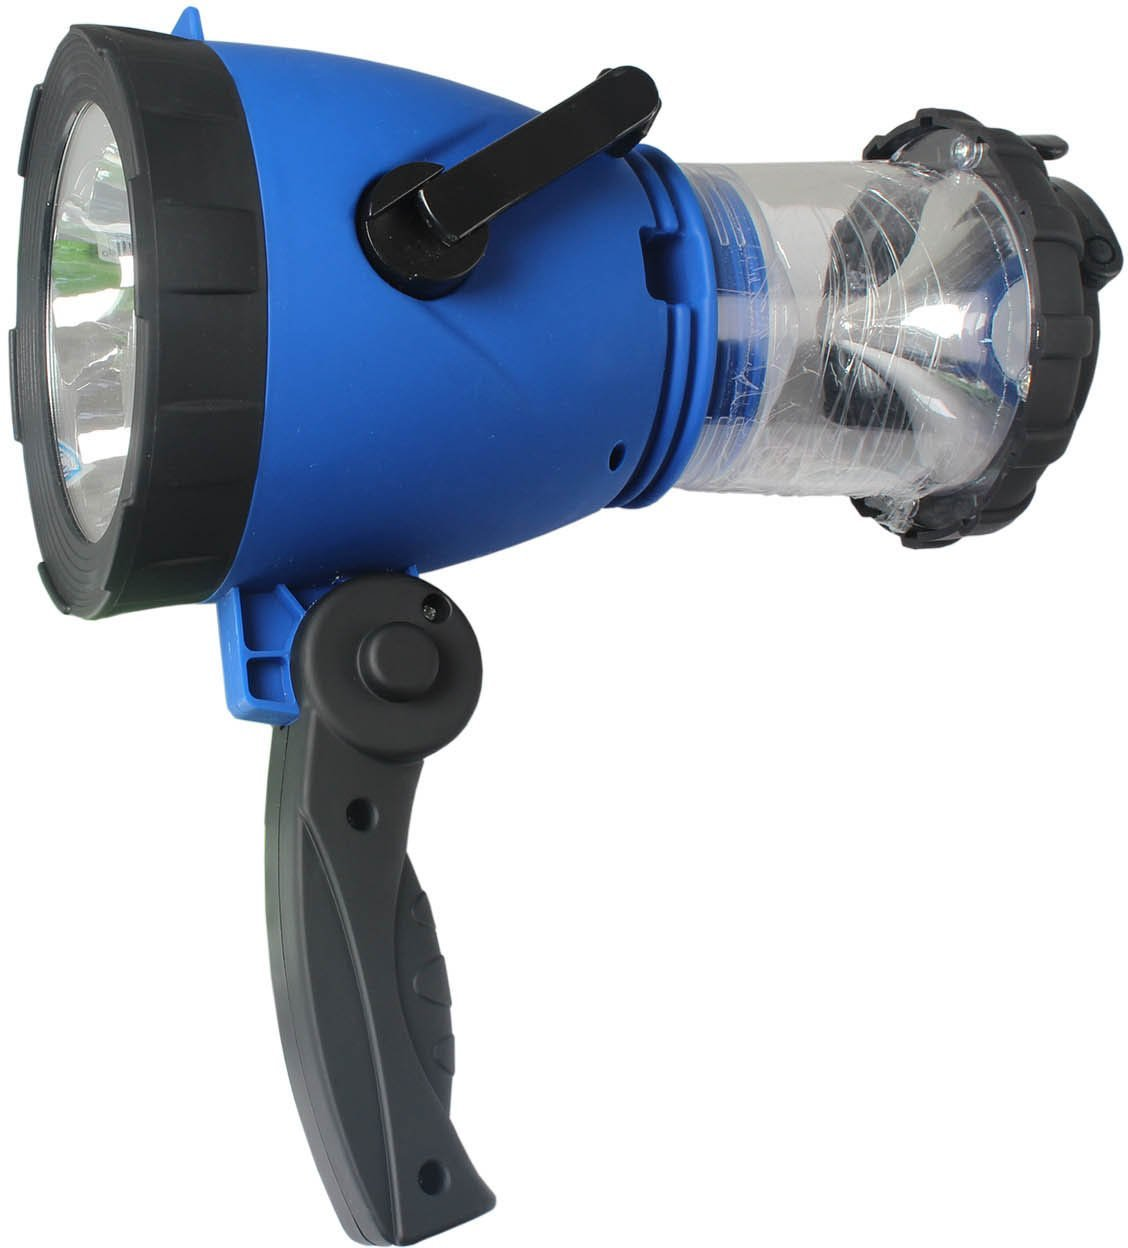 solarek-ultra-bright-rechargeable-led-camping-lantern-w-hand-crank-best-camping-lanterns